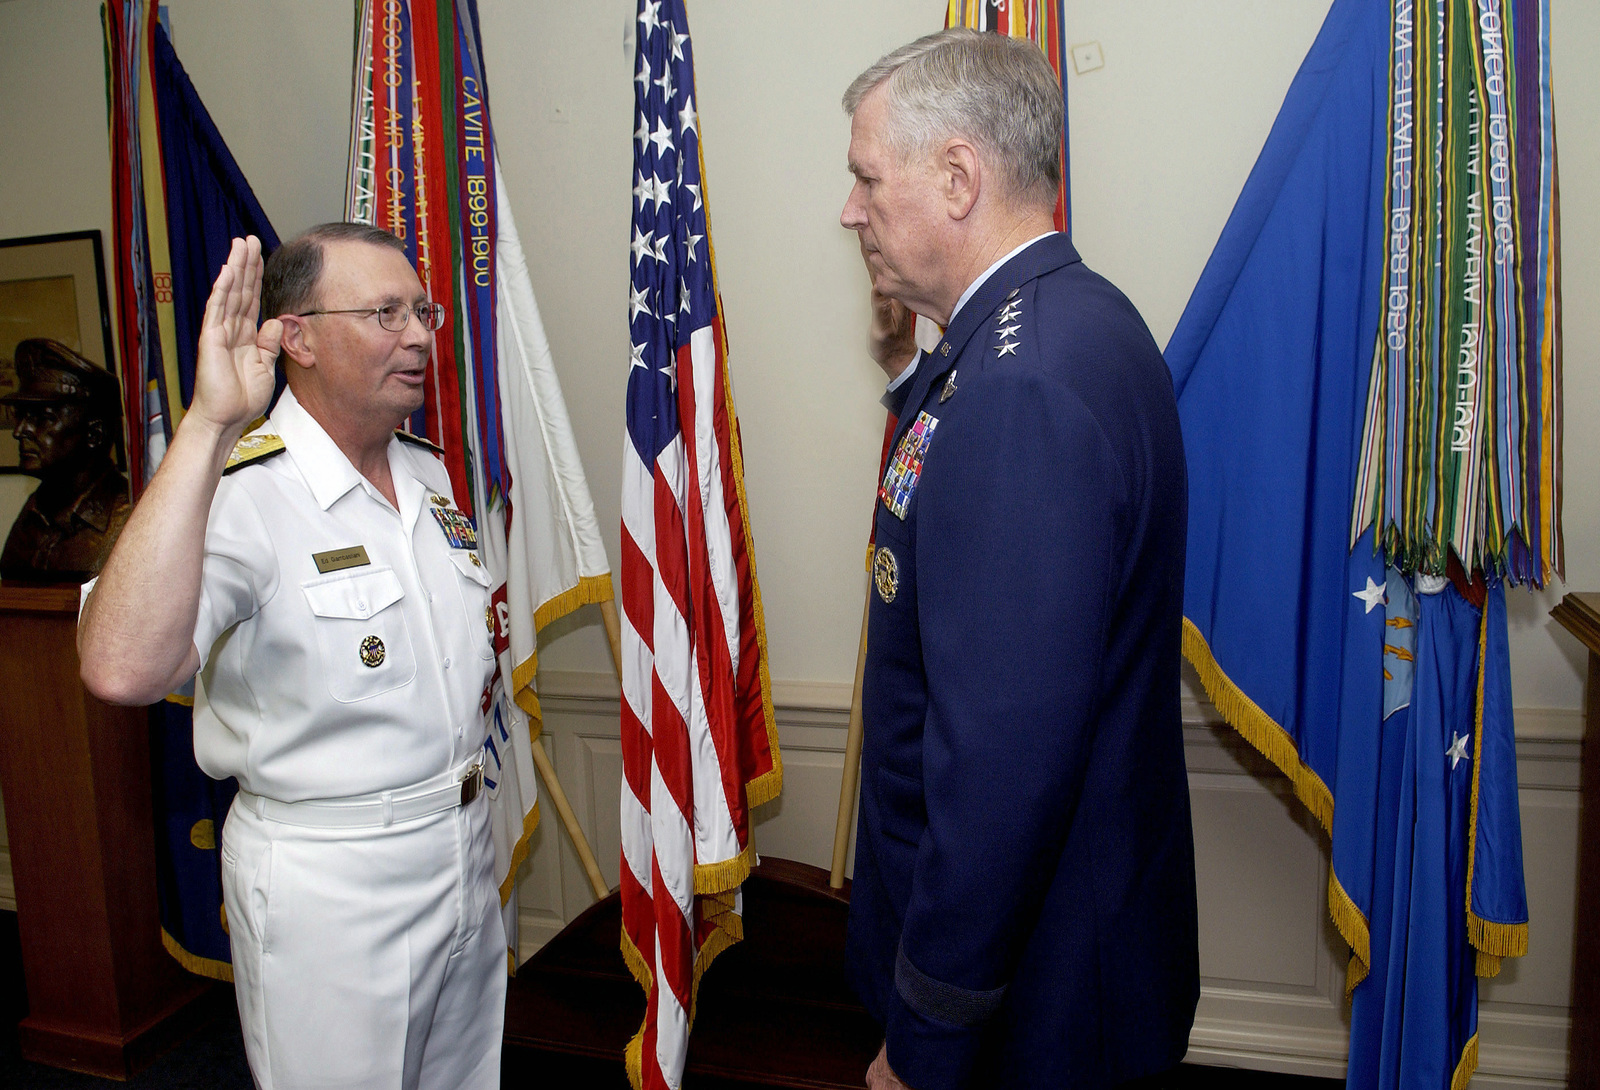 US Navy (USN) Admiral (ADM) Edmund P. Giambastiani (left), is administered the oath of office as Vice Chairman of the Joint Chiefs of STAFF (VCJCS) by US Air Force (USAF) General (GEN) Richard B. Myers, Chairman of the Joint Chiefs of STAFF (CJCS), during a ceremony at the Pentagon